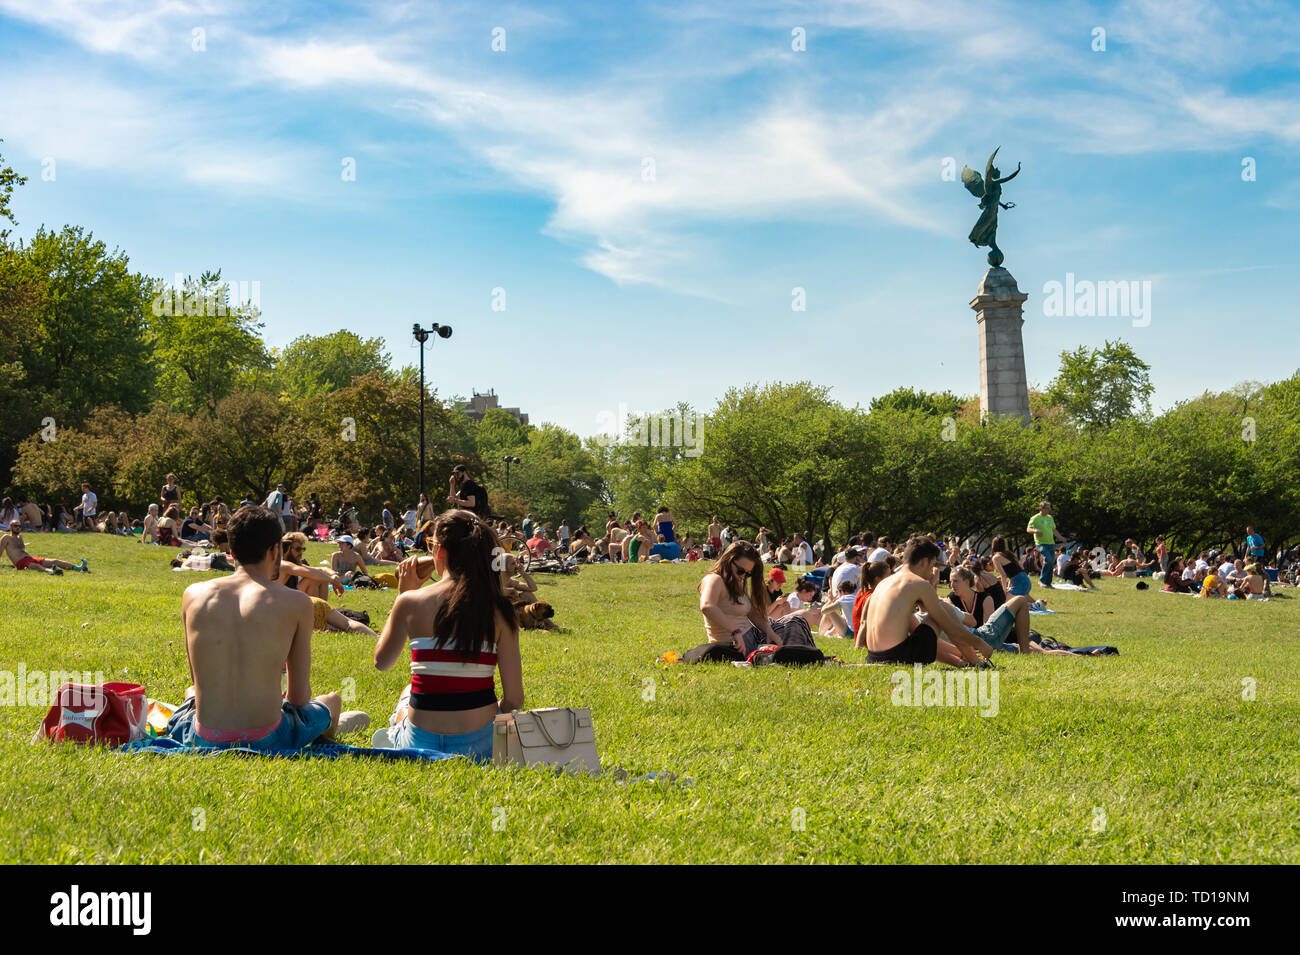 Montreal, 10 June 2019: Locals and tourists enjoy the nice weather and take a sunbath in the Mont-Royal park. - Stock Image